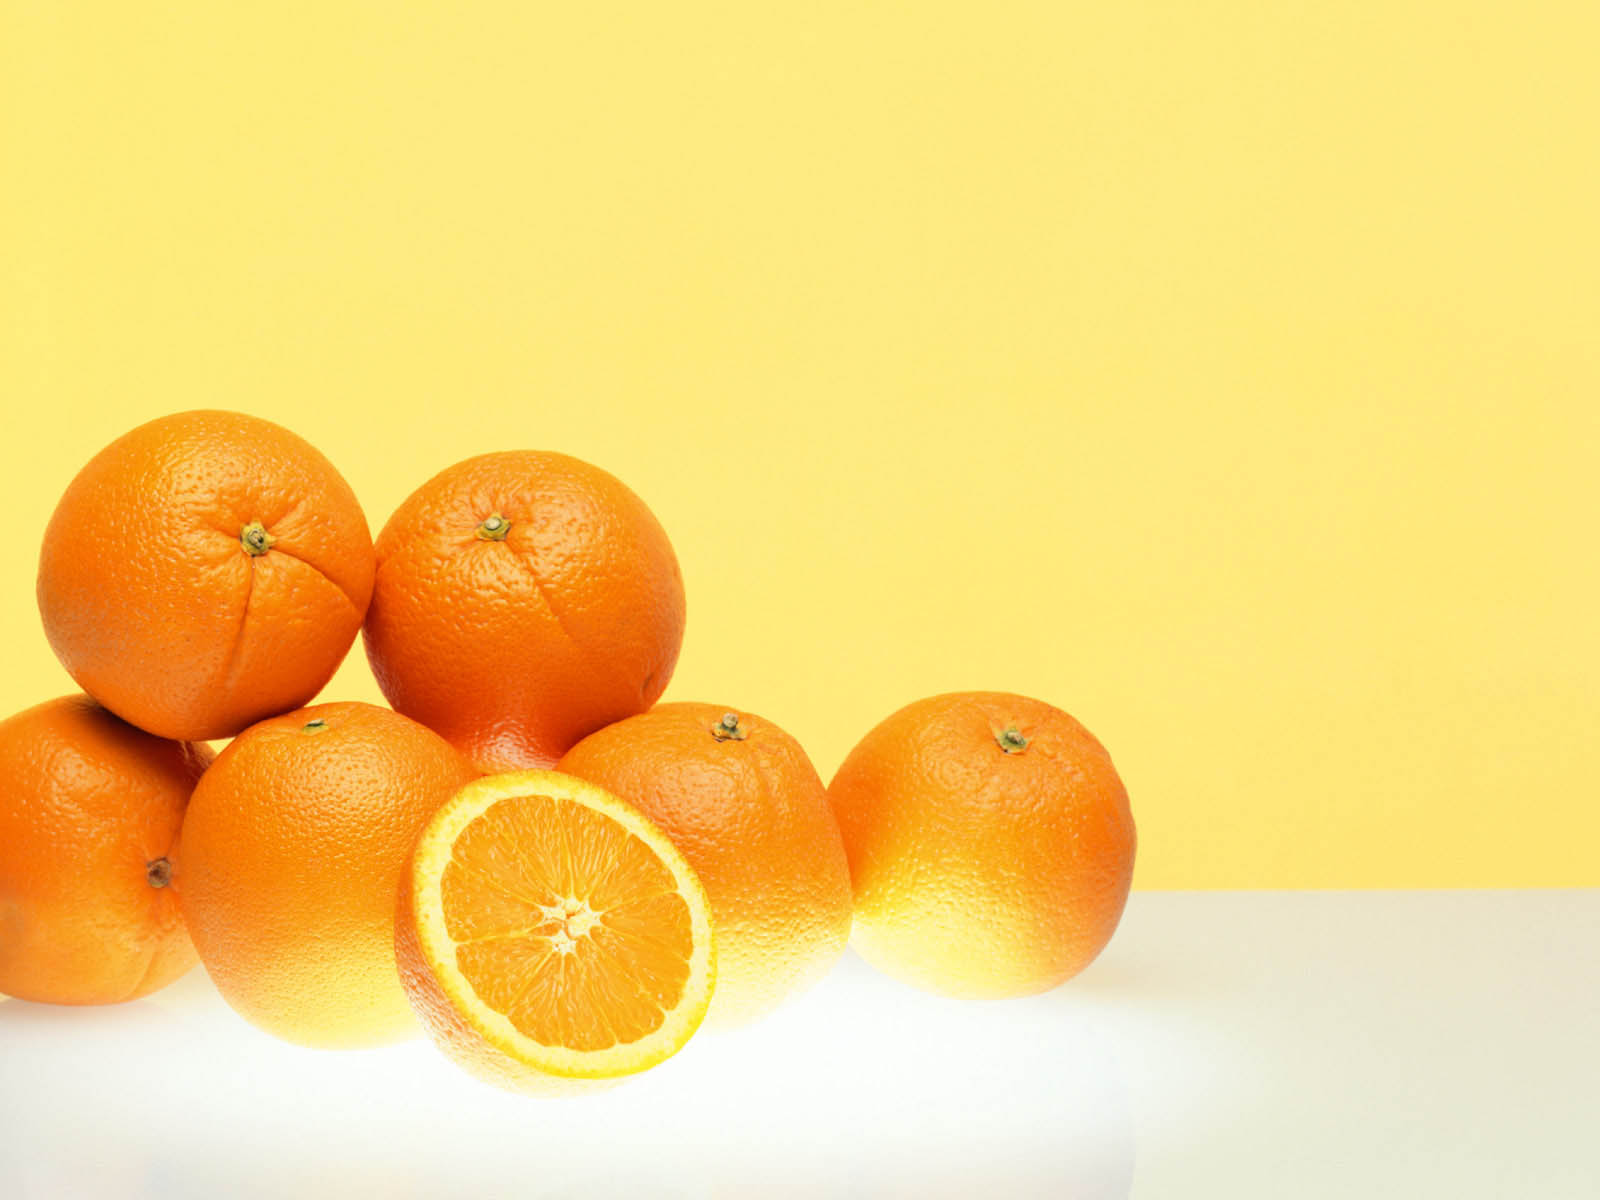 wallpaper orange fruits wallpapers